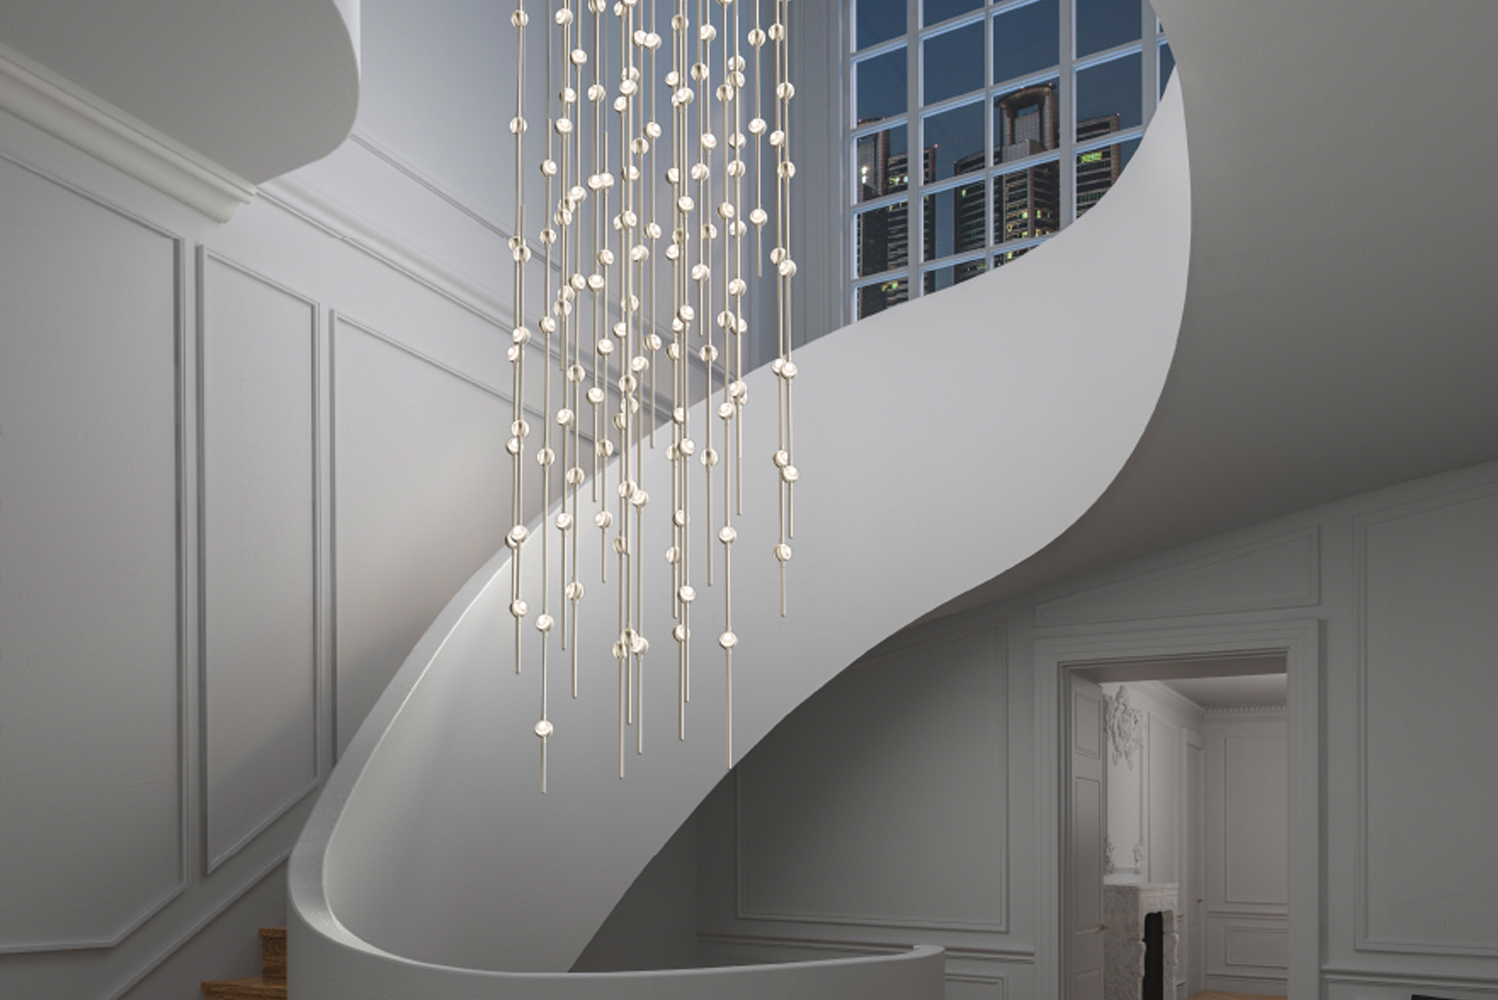 Introducing Andromeda Galaxy, the latest LED configuration from Sonneman—A Way of Light's Constellation collection.